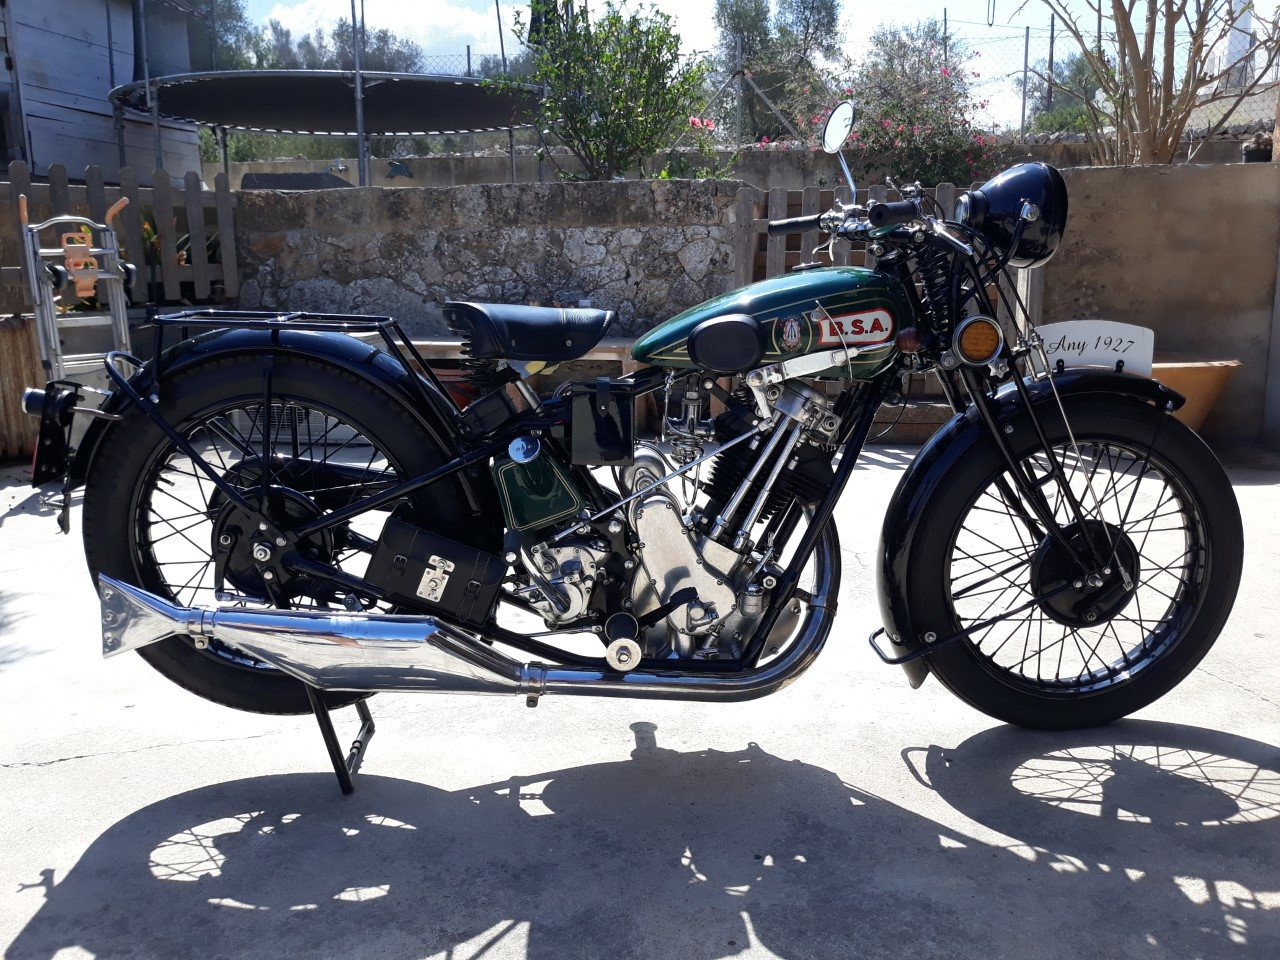 Picture of 1927 BSA  S27  Sloper  500cc. - restored, v.g.c. For Sale